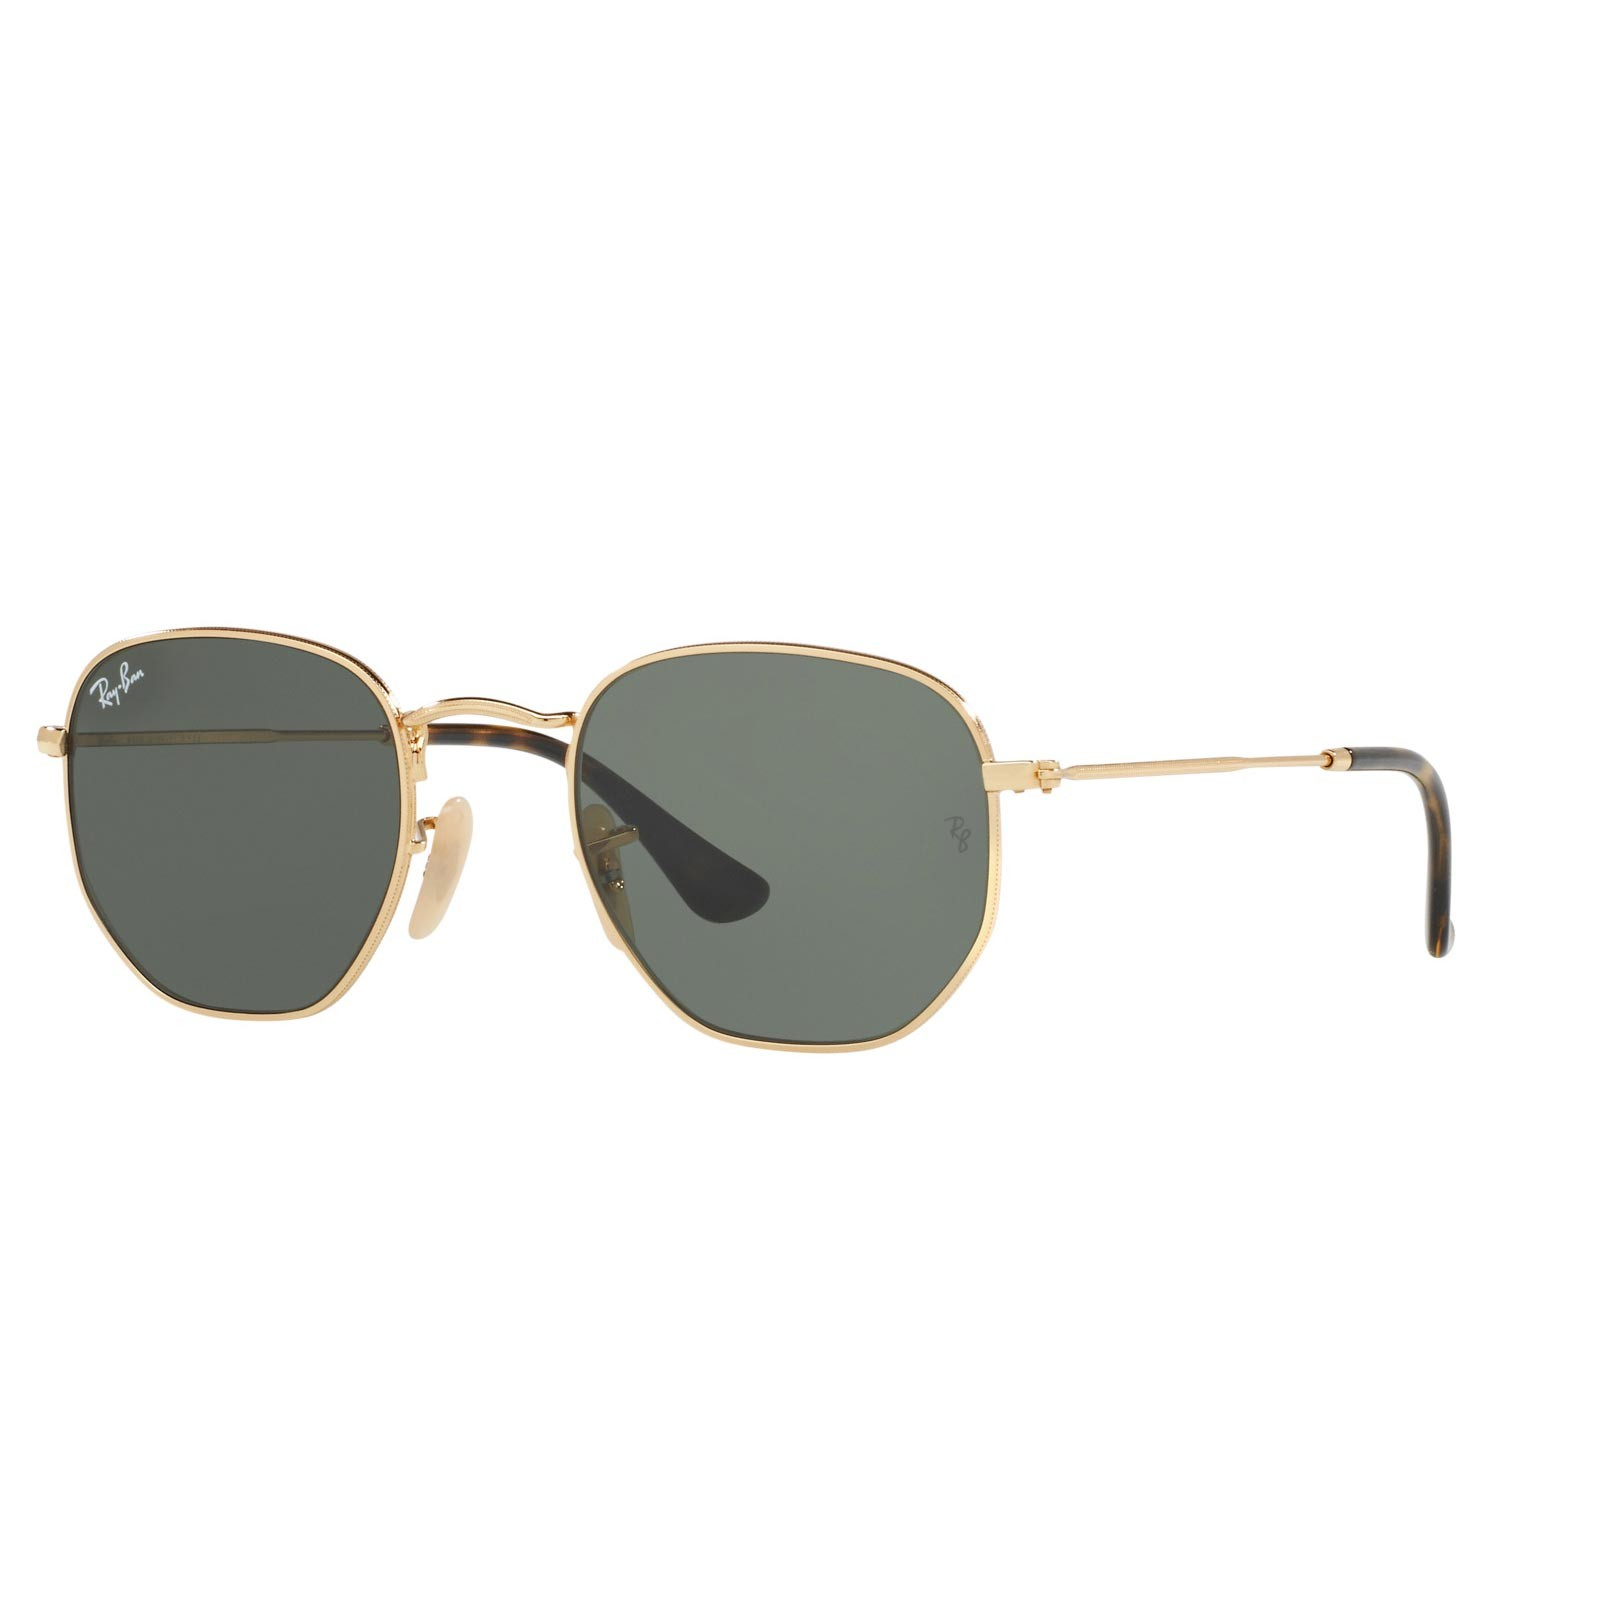 Ray Ban 0RB3548N HEXAGONAL 001 Gold Green | Occhiali da